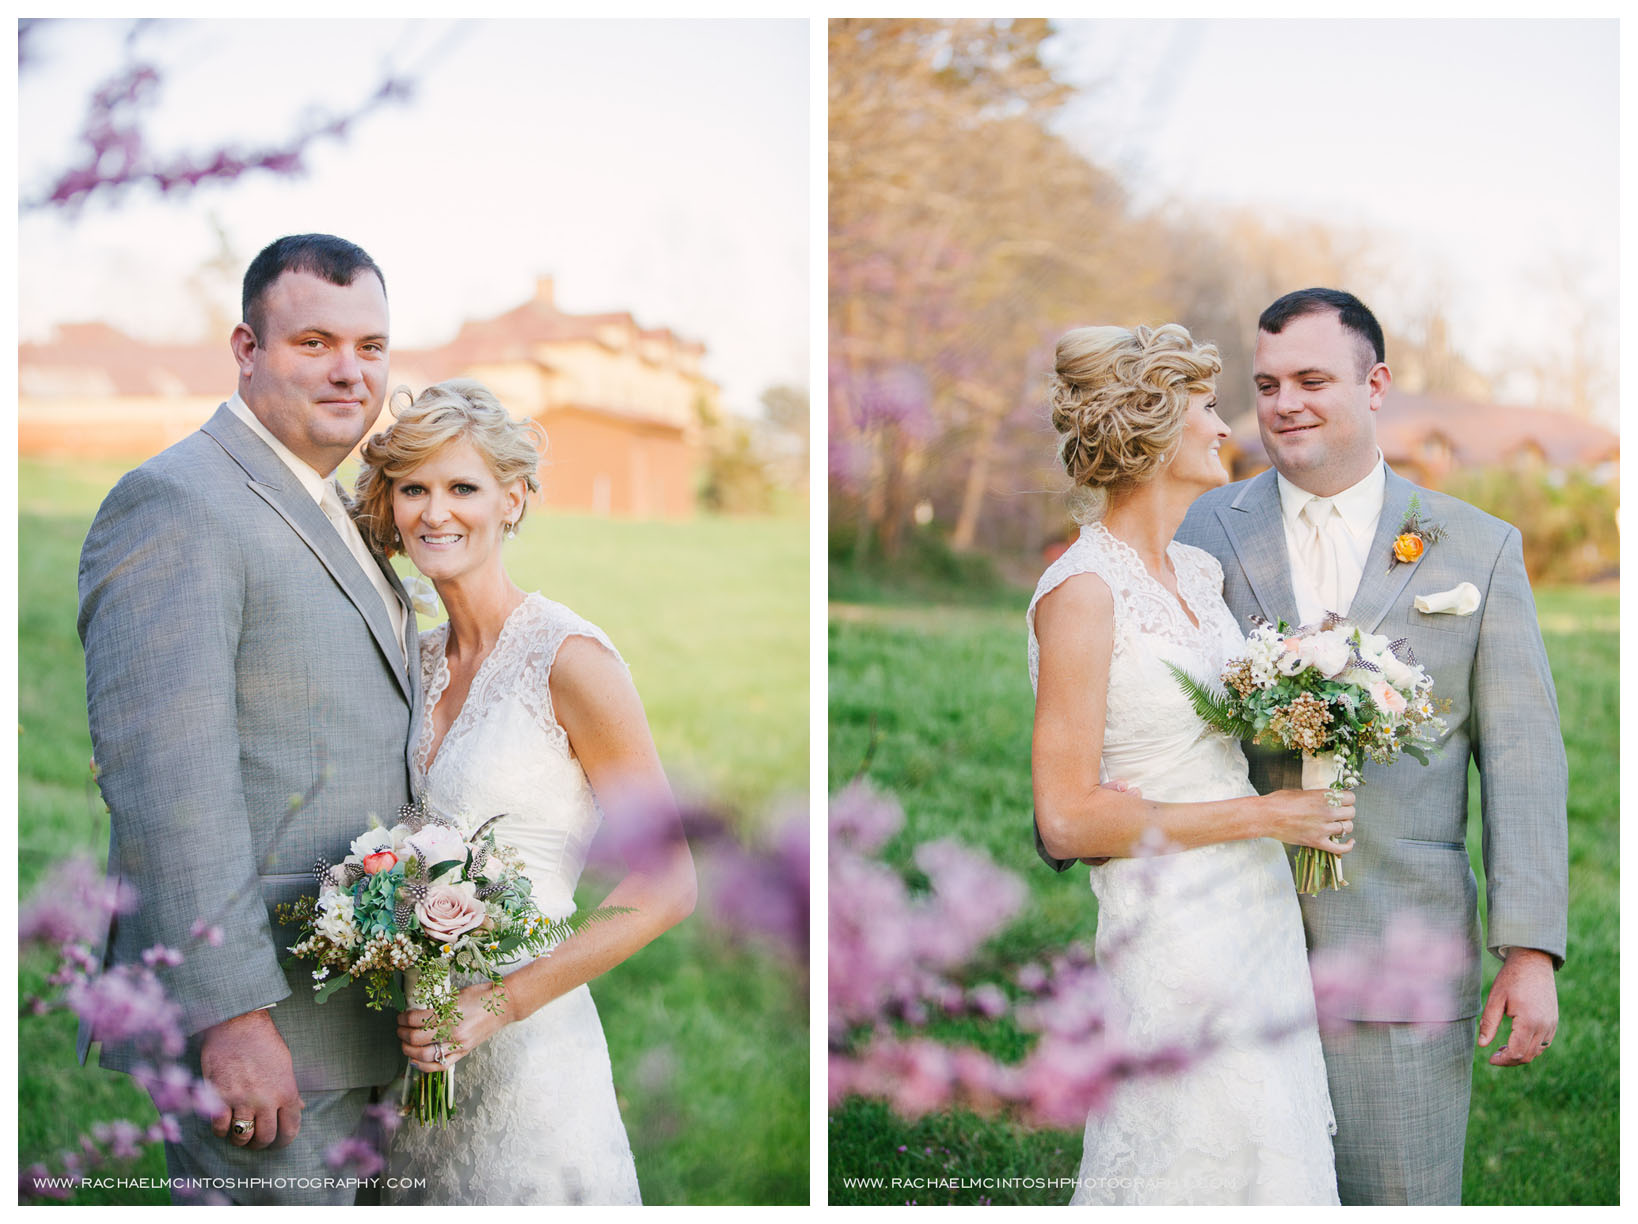 Biltmore Antler Hill Barn Wedding 101.5.jpg